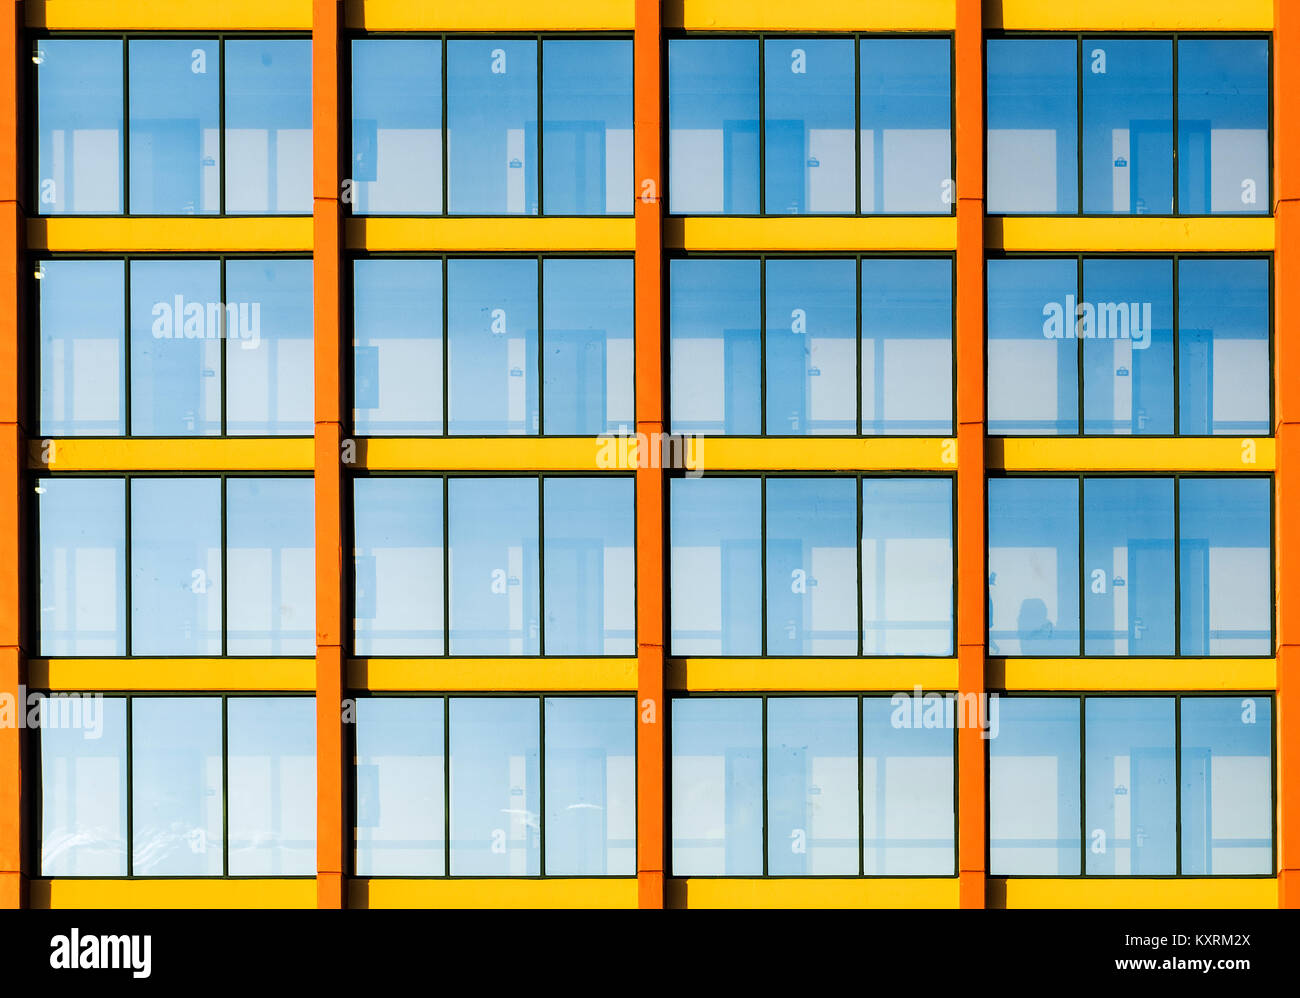 Graphic detail of a hotel building exterior. - Stock Image